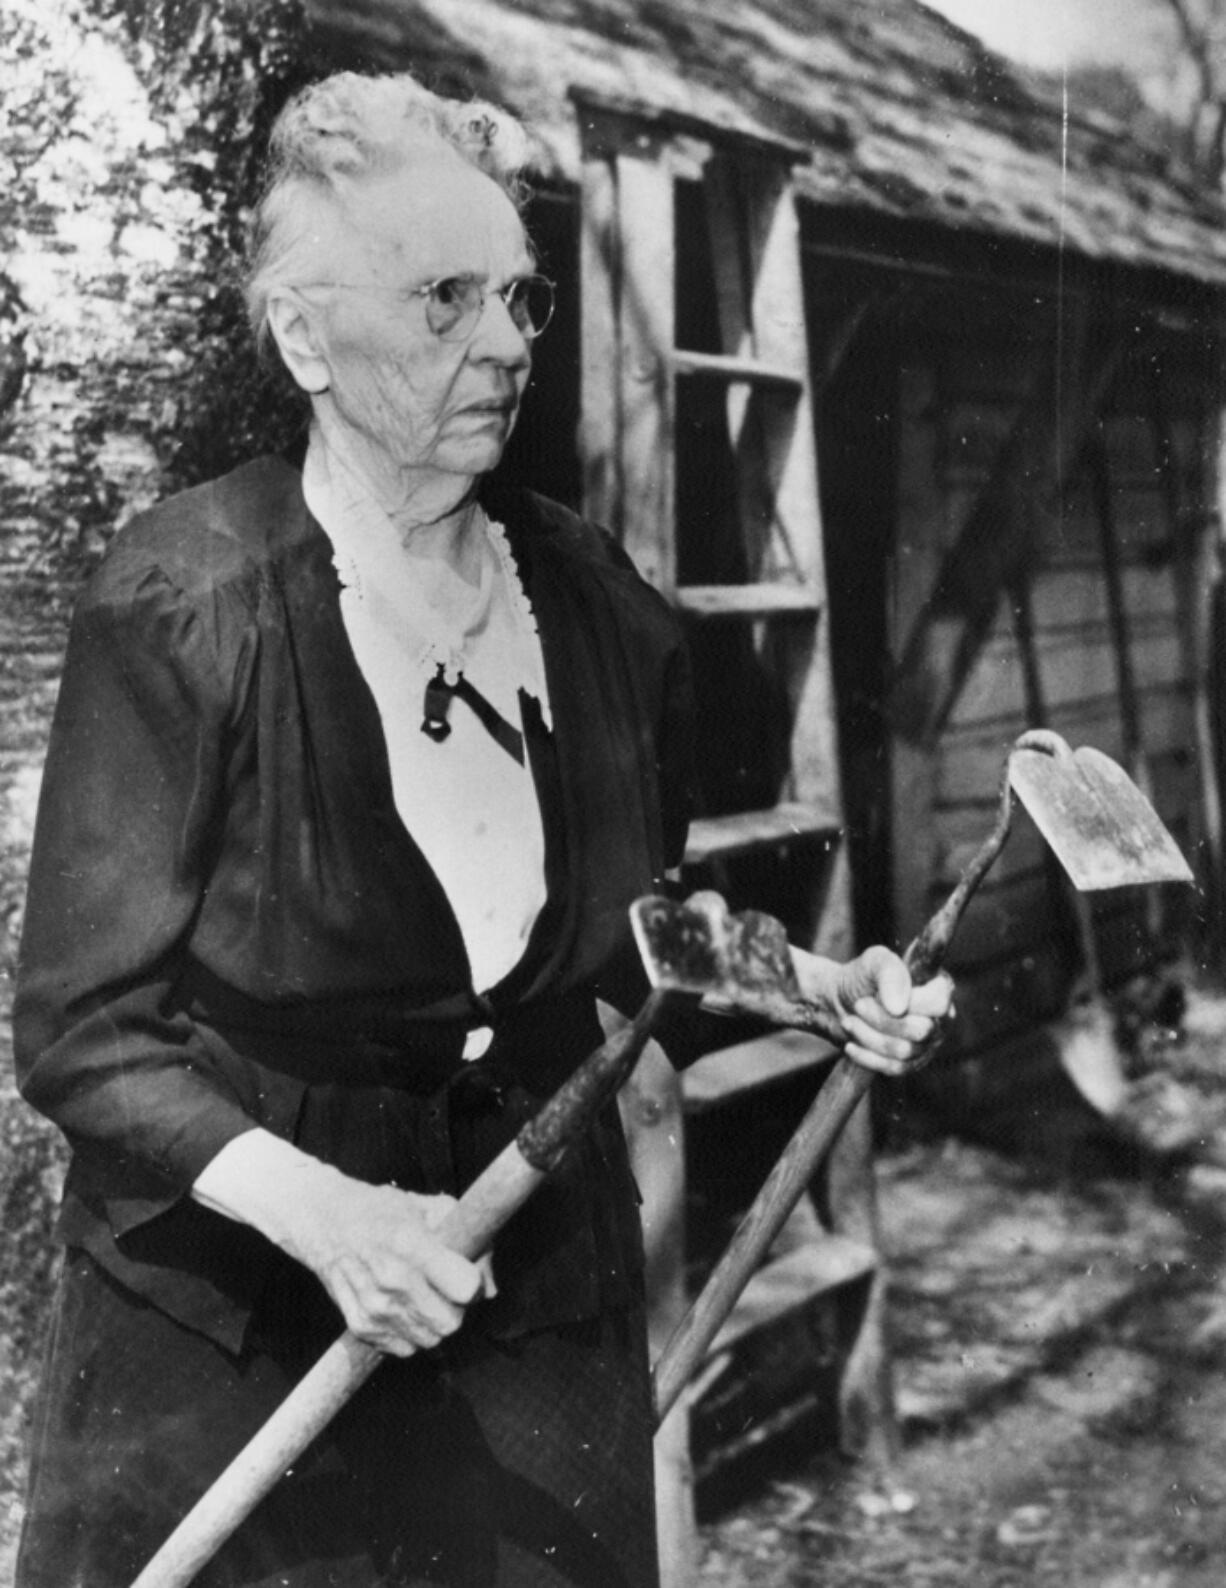 Hulda Klager, pictured in the in 1940s or '50s, started hybridizing apples in 1905 to have better ones for her pies. By 1922, she was a lilac phenomenon. Thousands of people traveled to her Woodland home each year to talk with her and learn about botanical techniques. When her husband, Frank, died in 1928, she almost abandoned her lilac work. Her son encouraged her to keep going.